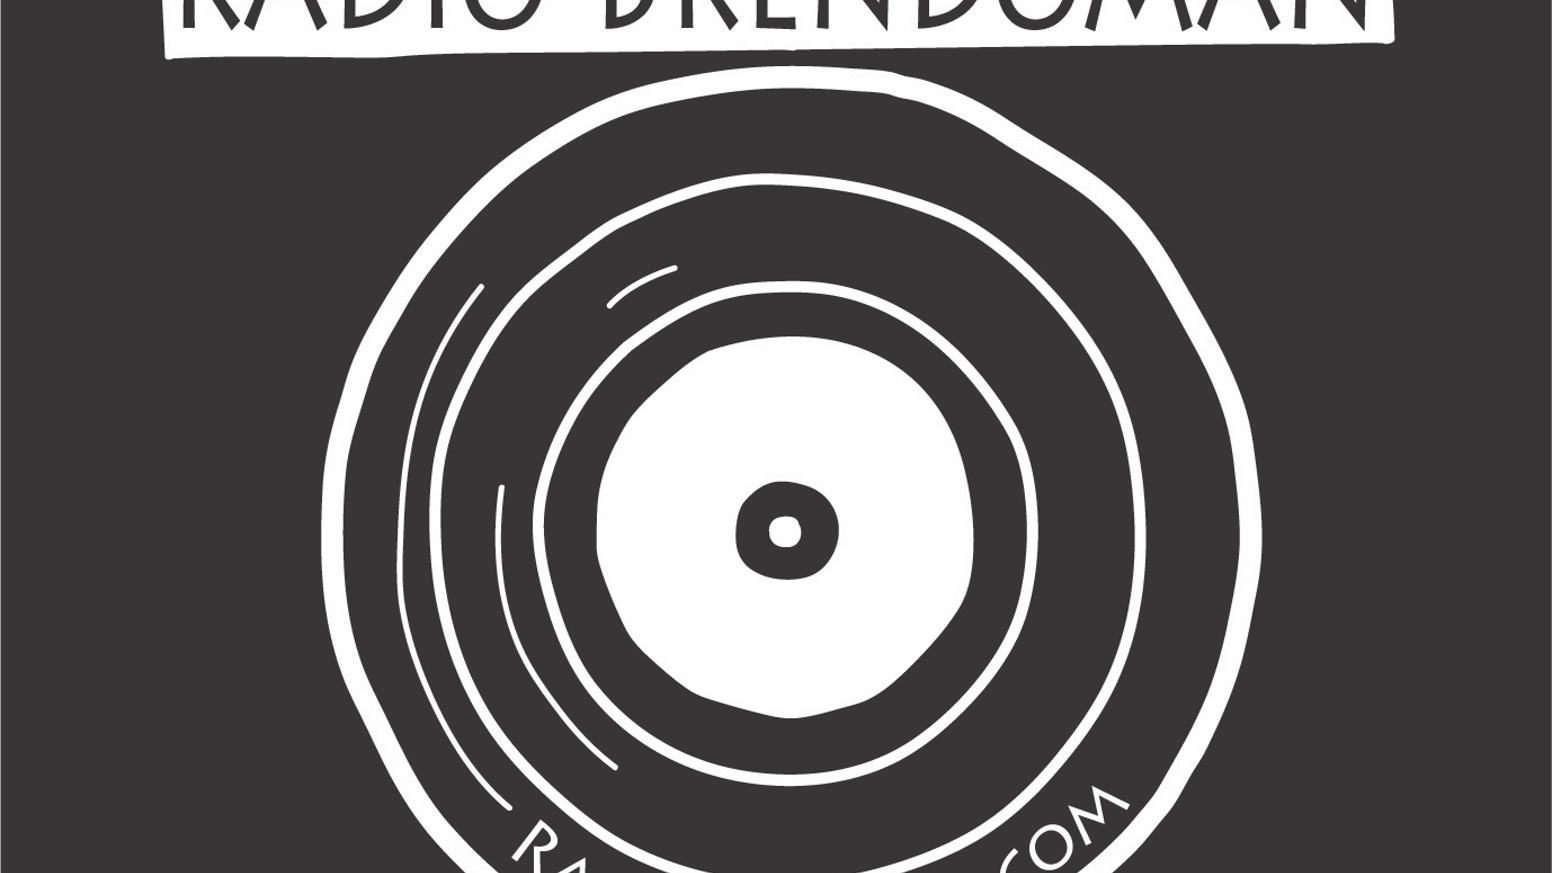 Radio Brendoman Makes The World S First Podcast Seven Inch